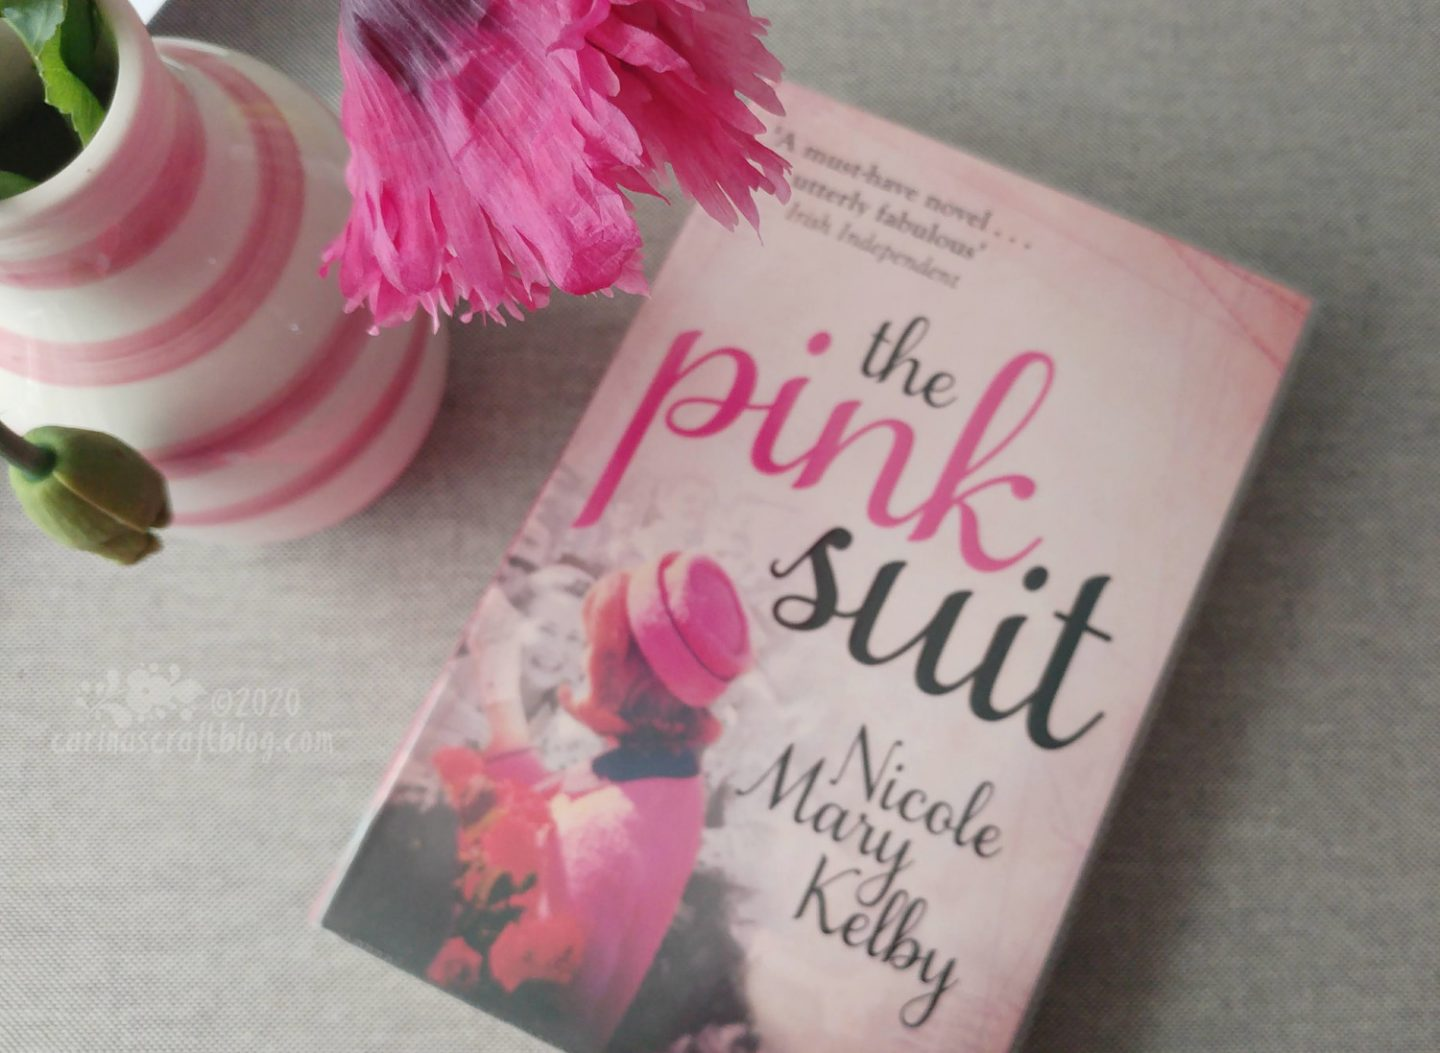 Book The Pink Suit next to a vase with a pink poppy.